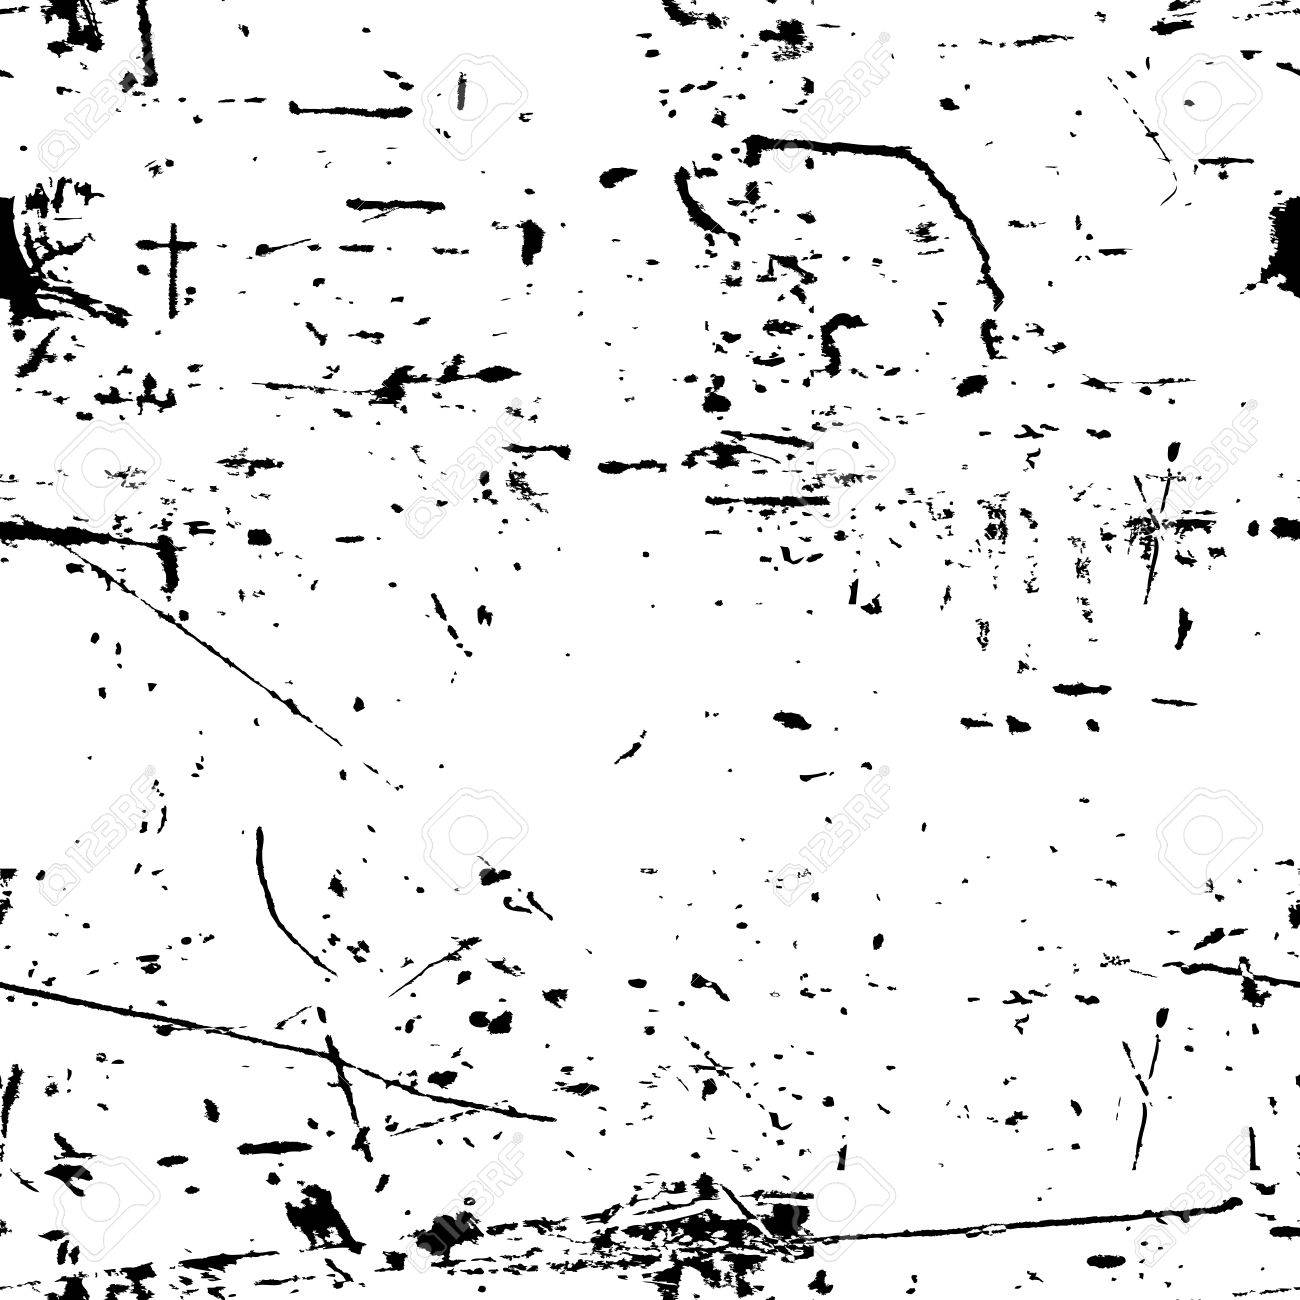 concrete texture seamless  Abstract vector grunge seamless texture  Black and white dirty background. Concrete Texture Seamless Stock Photos  amp  Pictures  Royalty Free